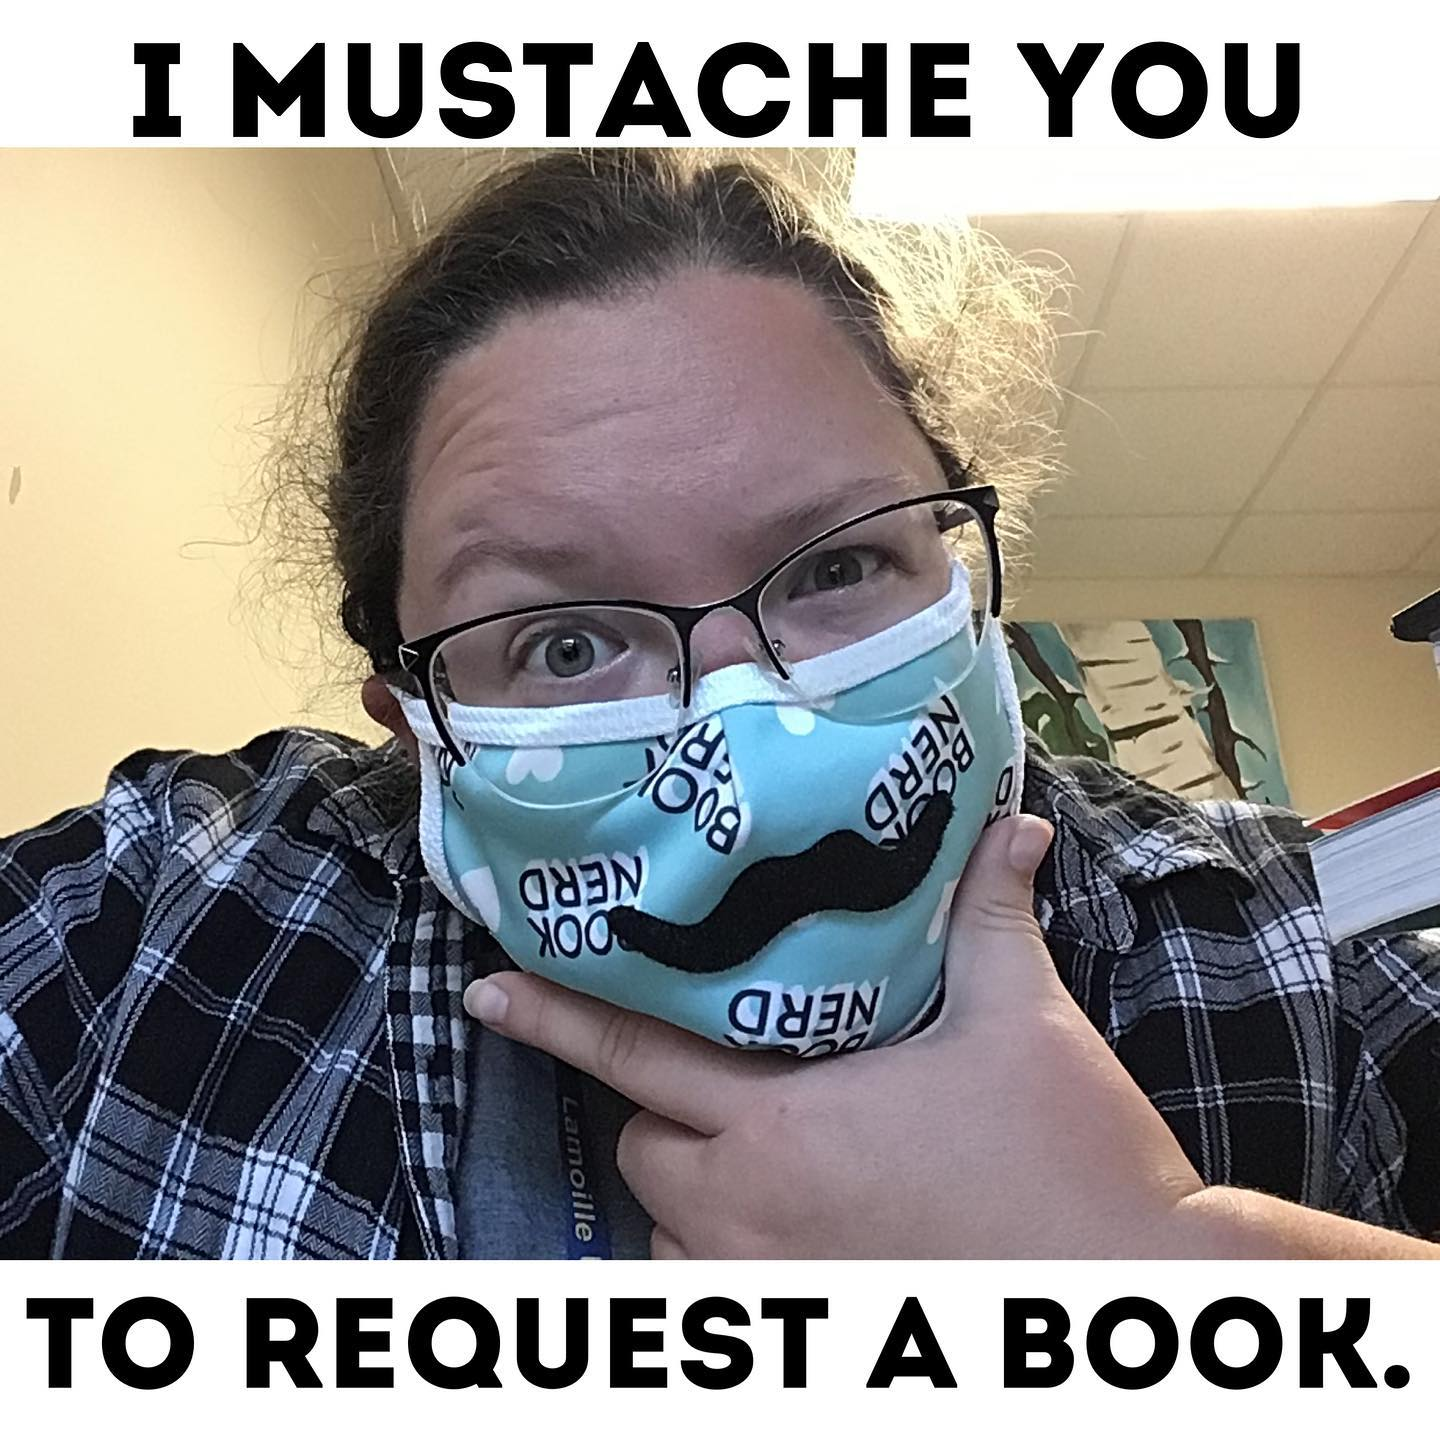 Want to request a book?